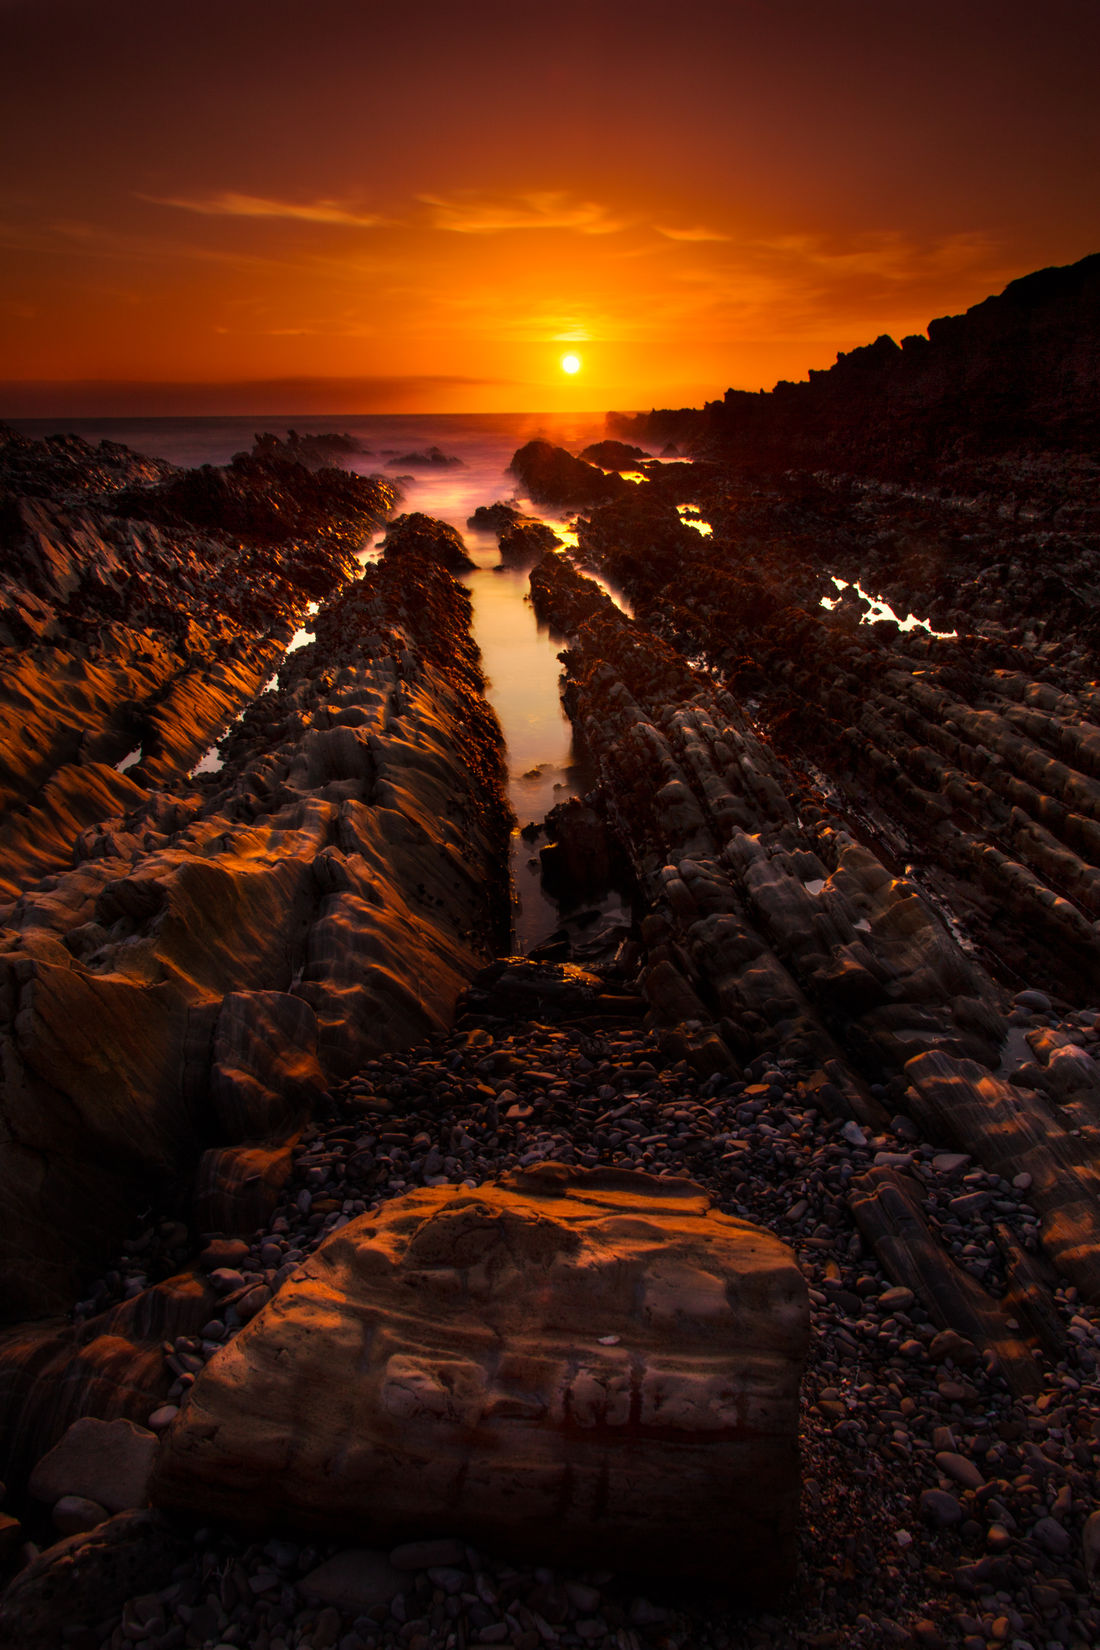 A Moment of Gold. There are days when the sun burns through the ocean's mist and turns the sky gold. Dramatic Coast Dramatic Light Landscape_photography Lens Flare Majestic No People Ocean Orange Sky Outdoors Pacific Ocean Patterns Rock Formation Scenic Sun Sunbeam Sunset